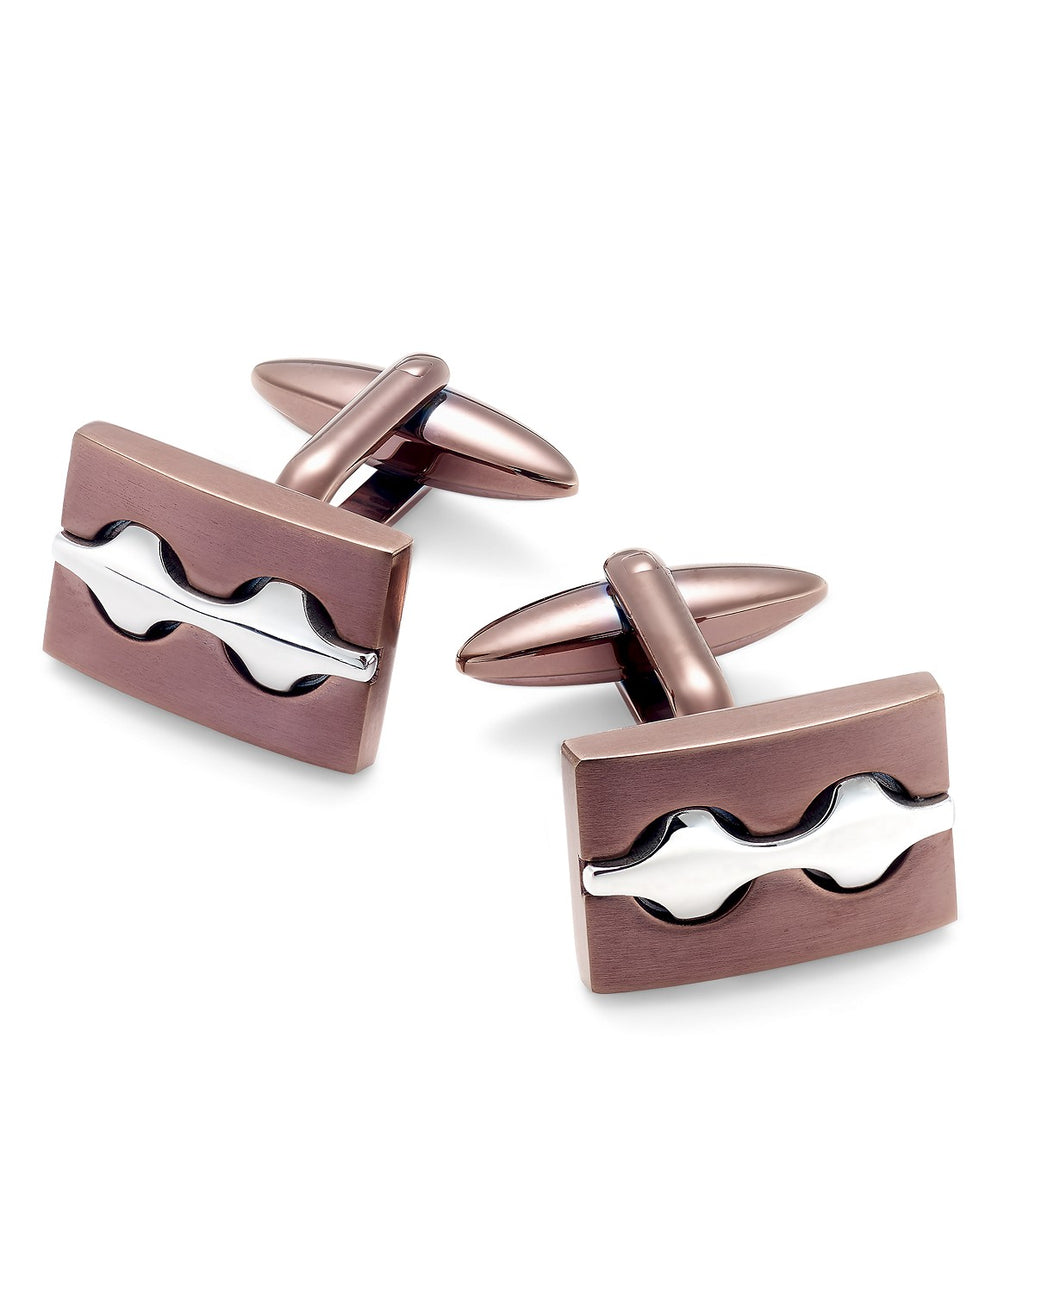 Men's Two-Tone Decorative Cuff Links